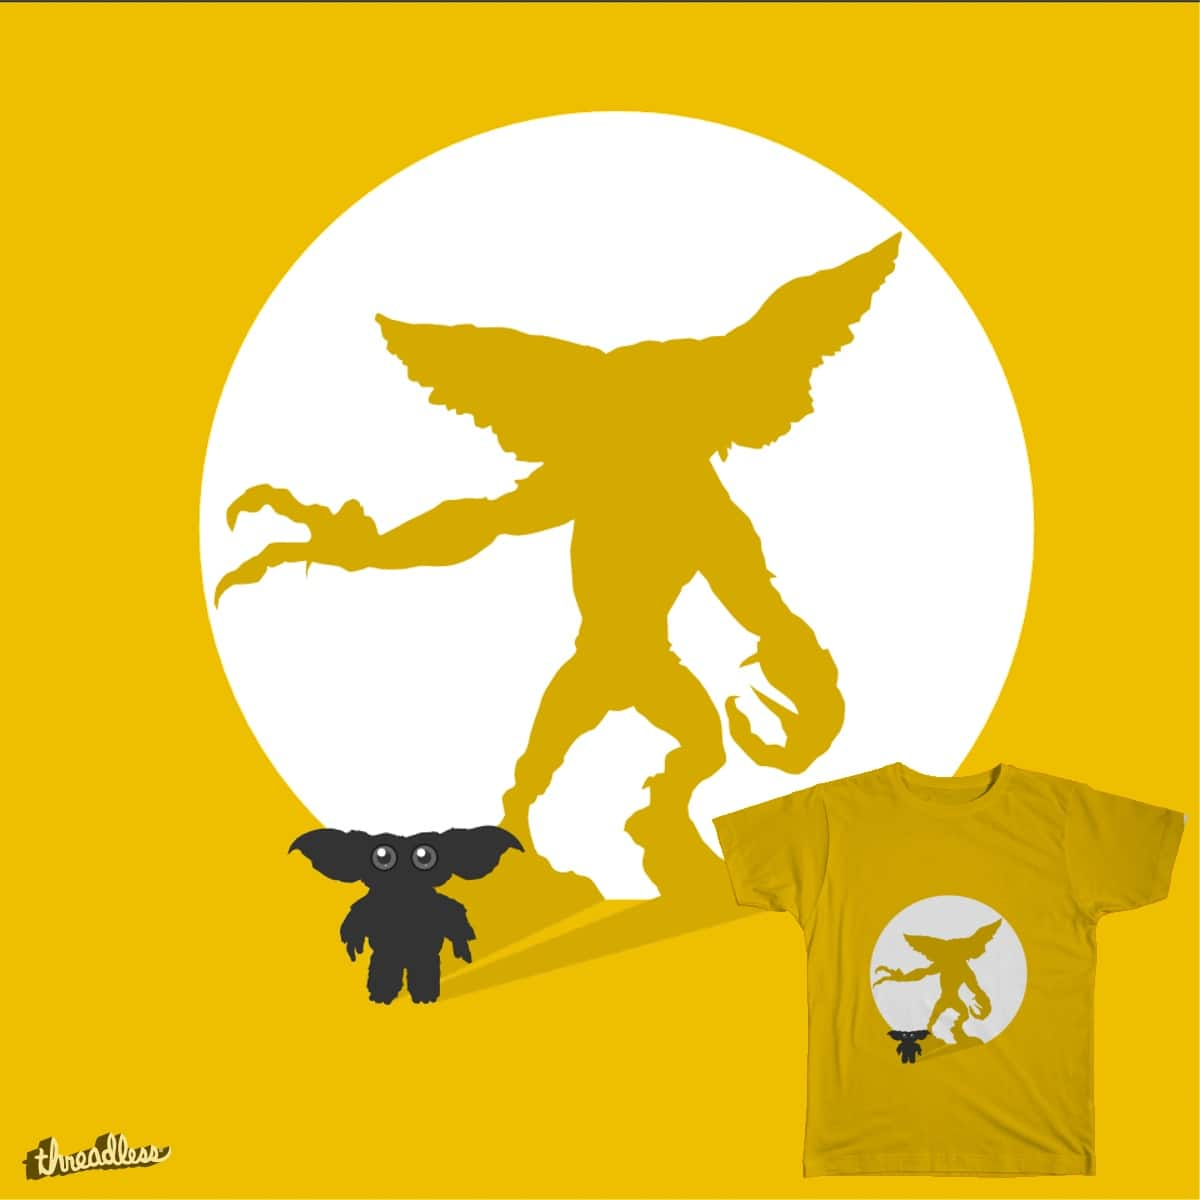 bad shadow by charlie.panapa on Threadless